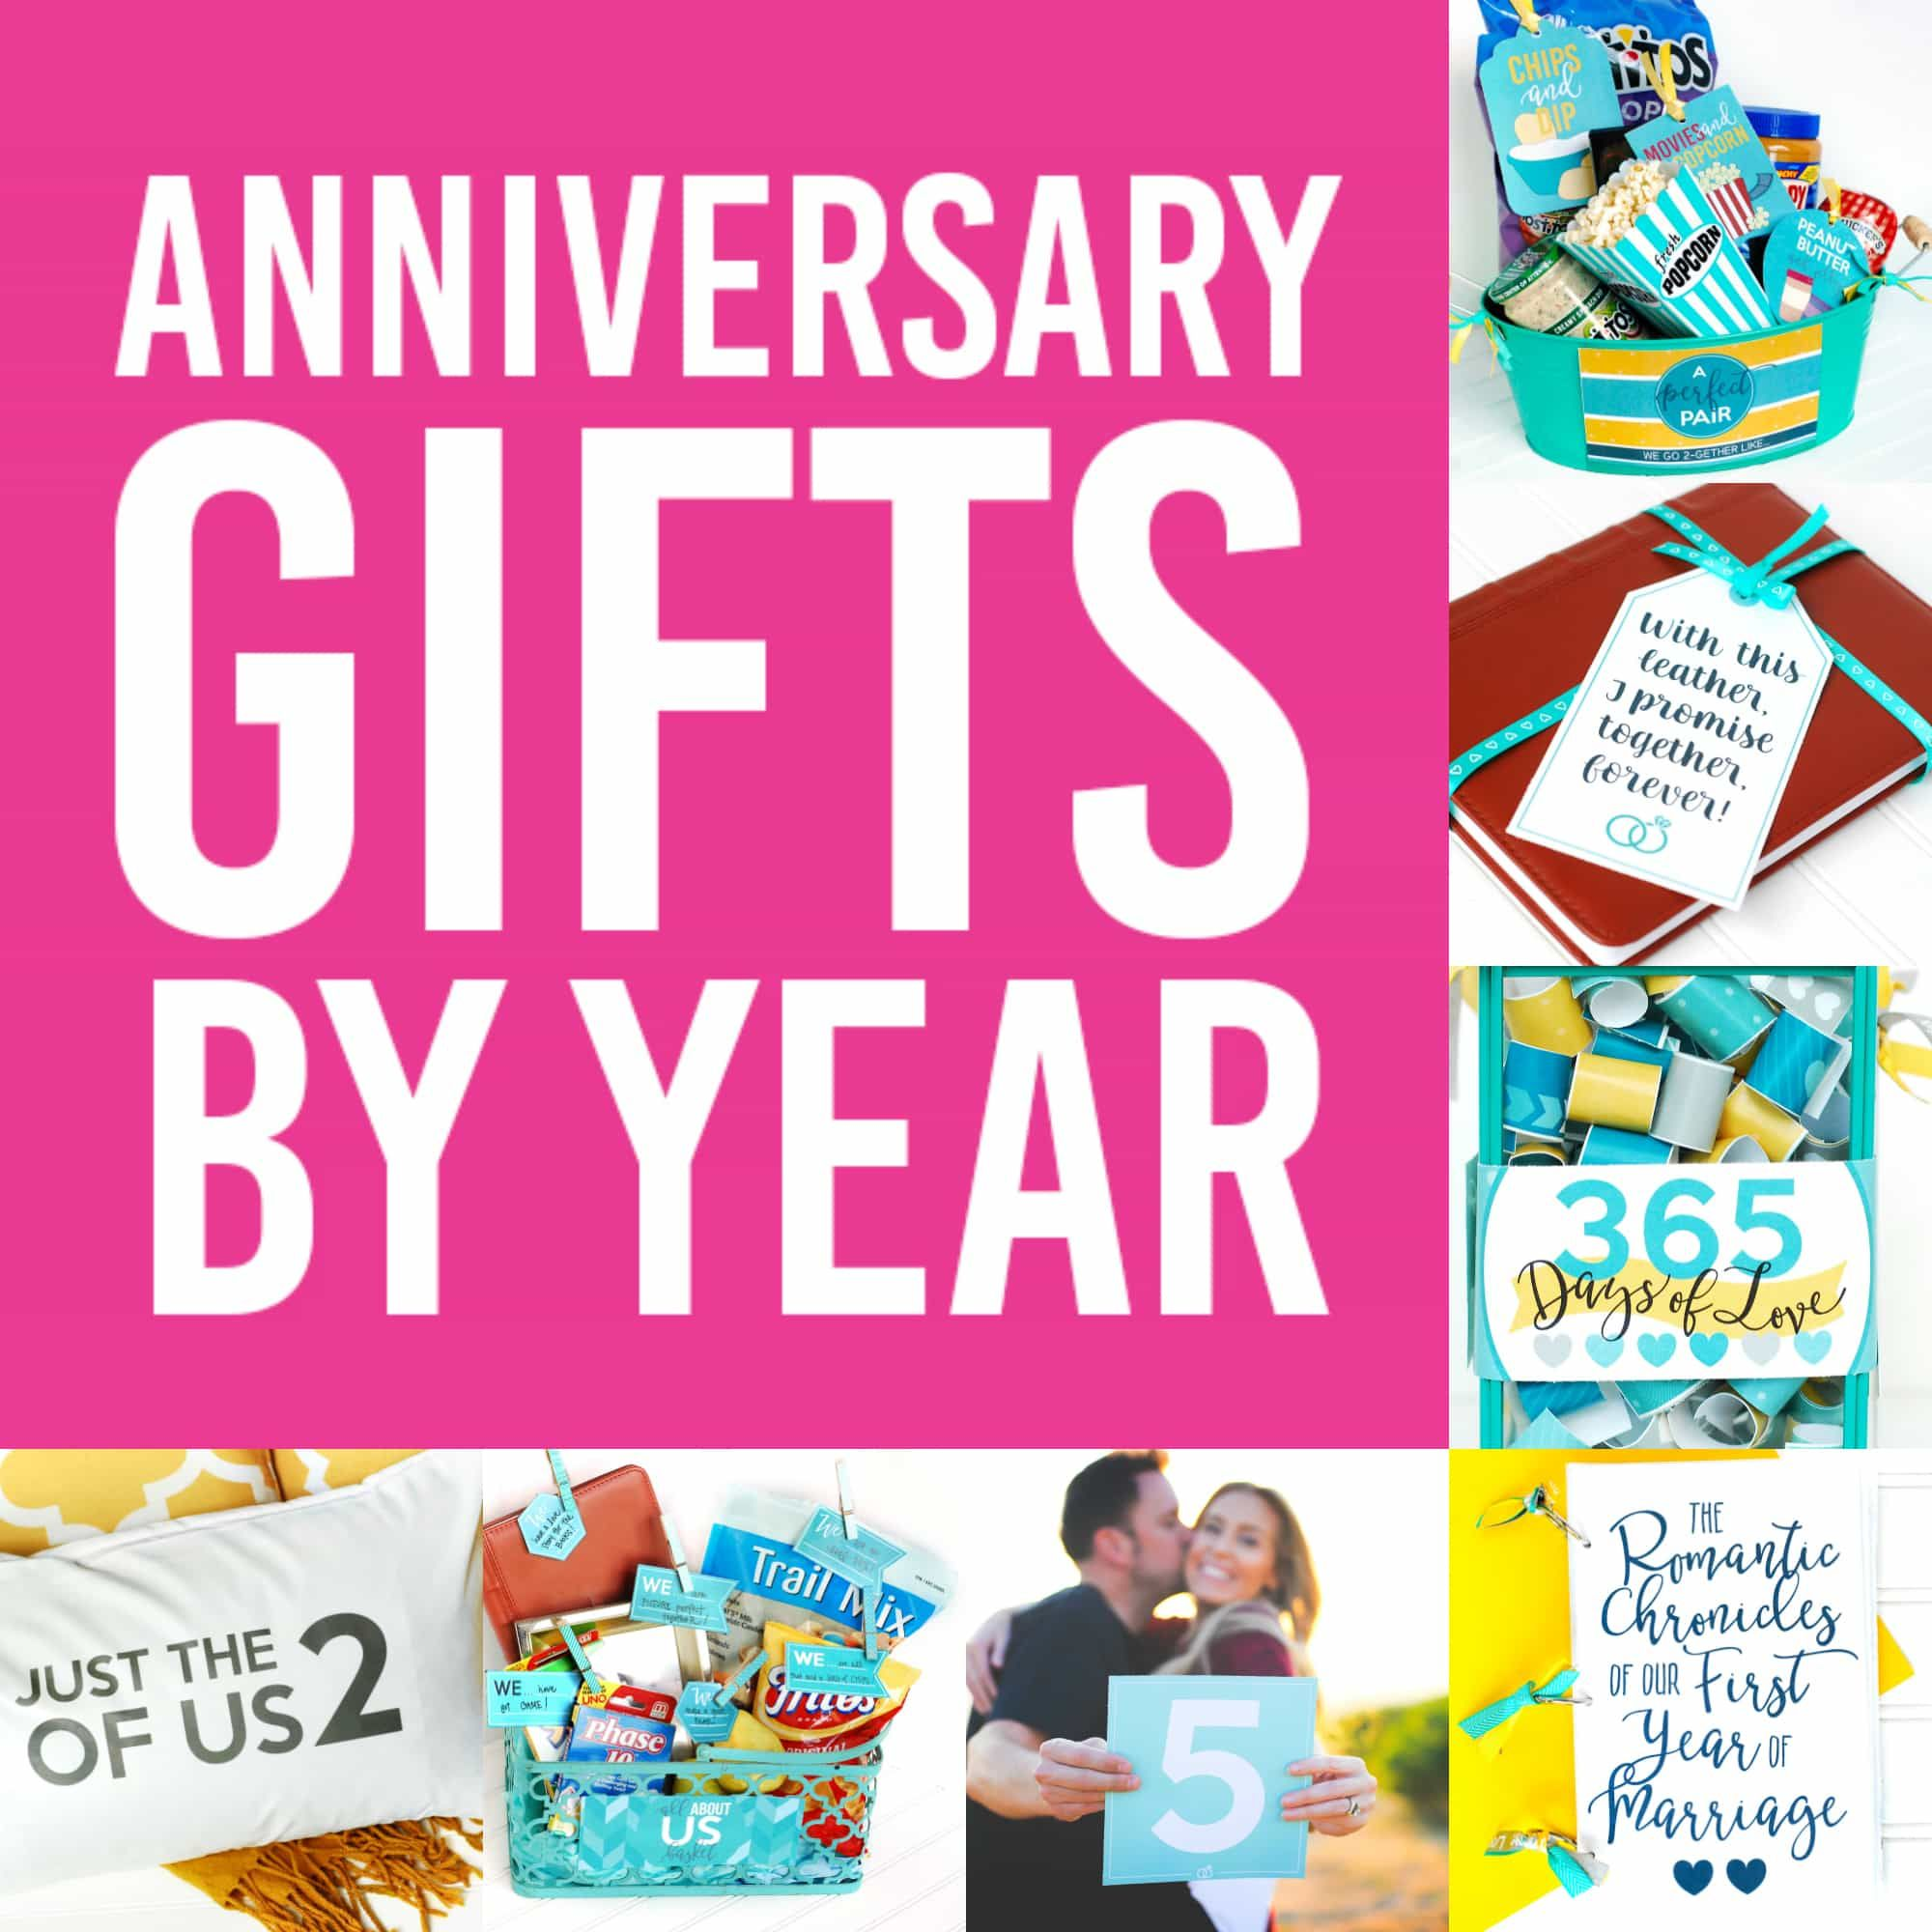 Anniversary Gifts By Year For Spouses - From